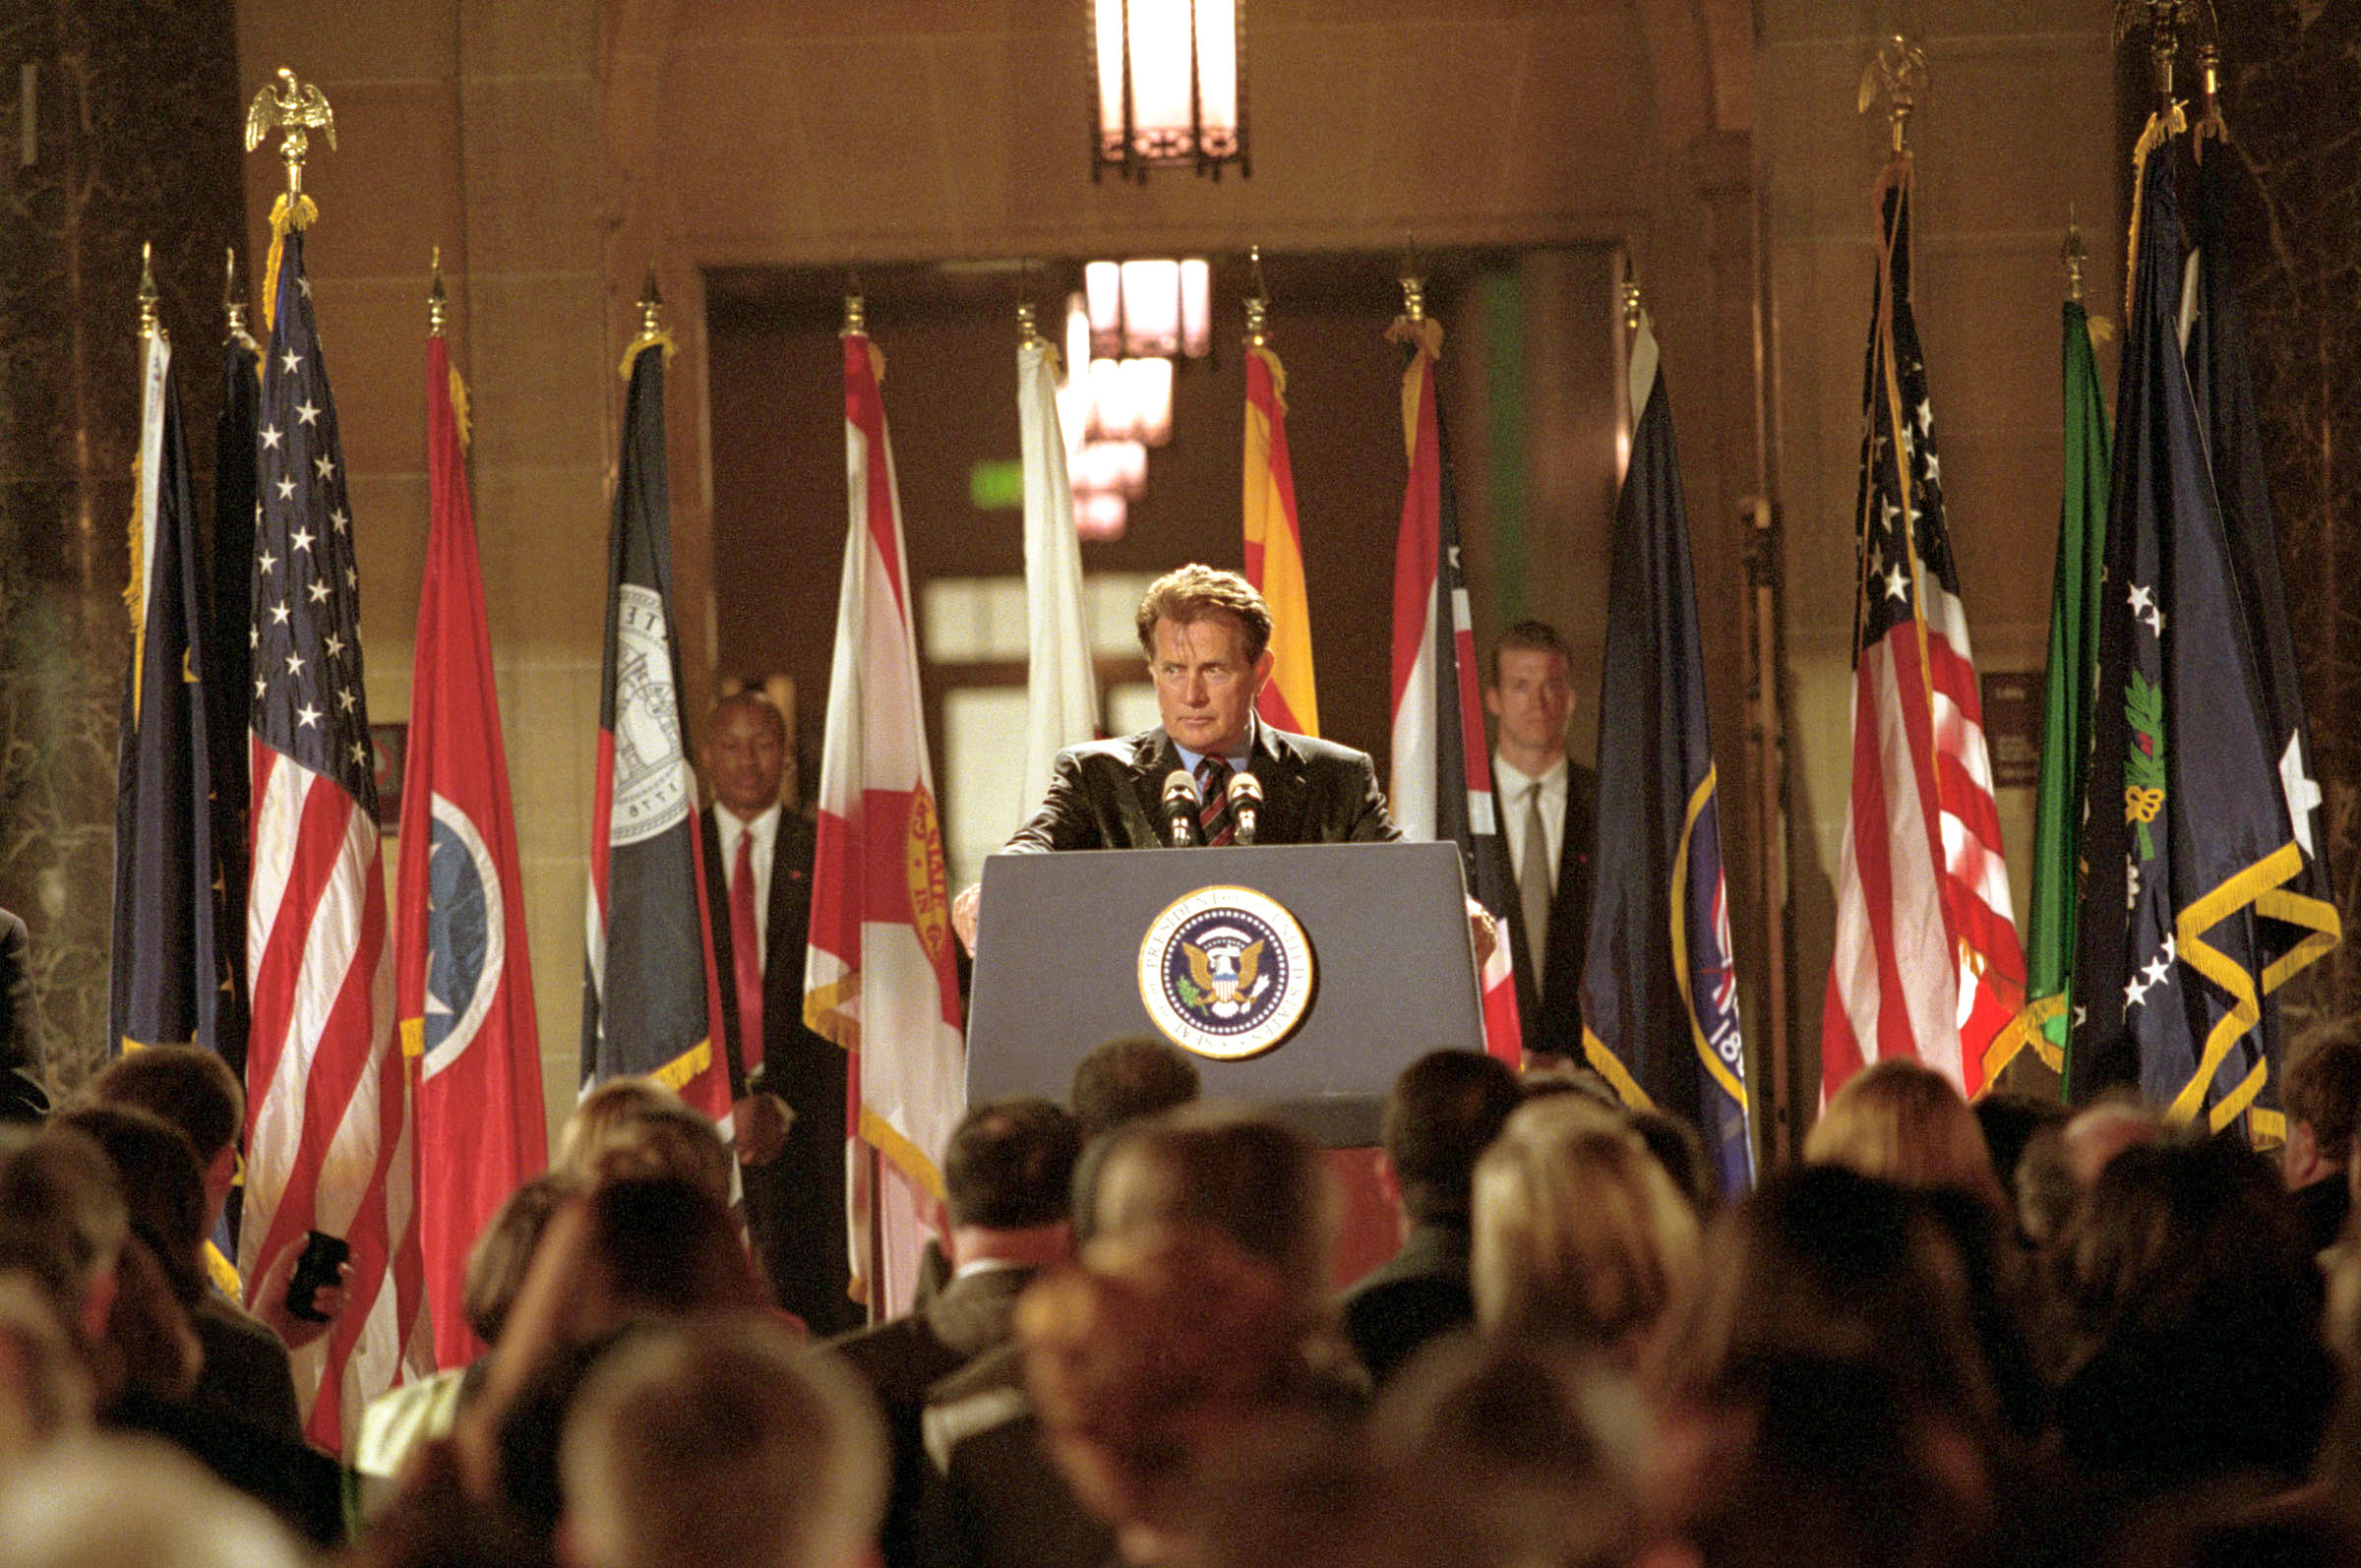 Martin Sheen gives a speech from a podium with the US seal on the front